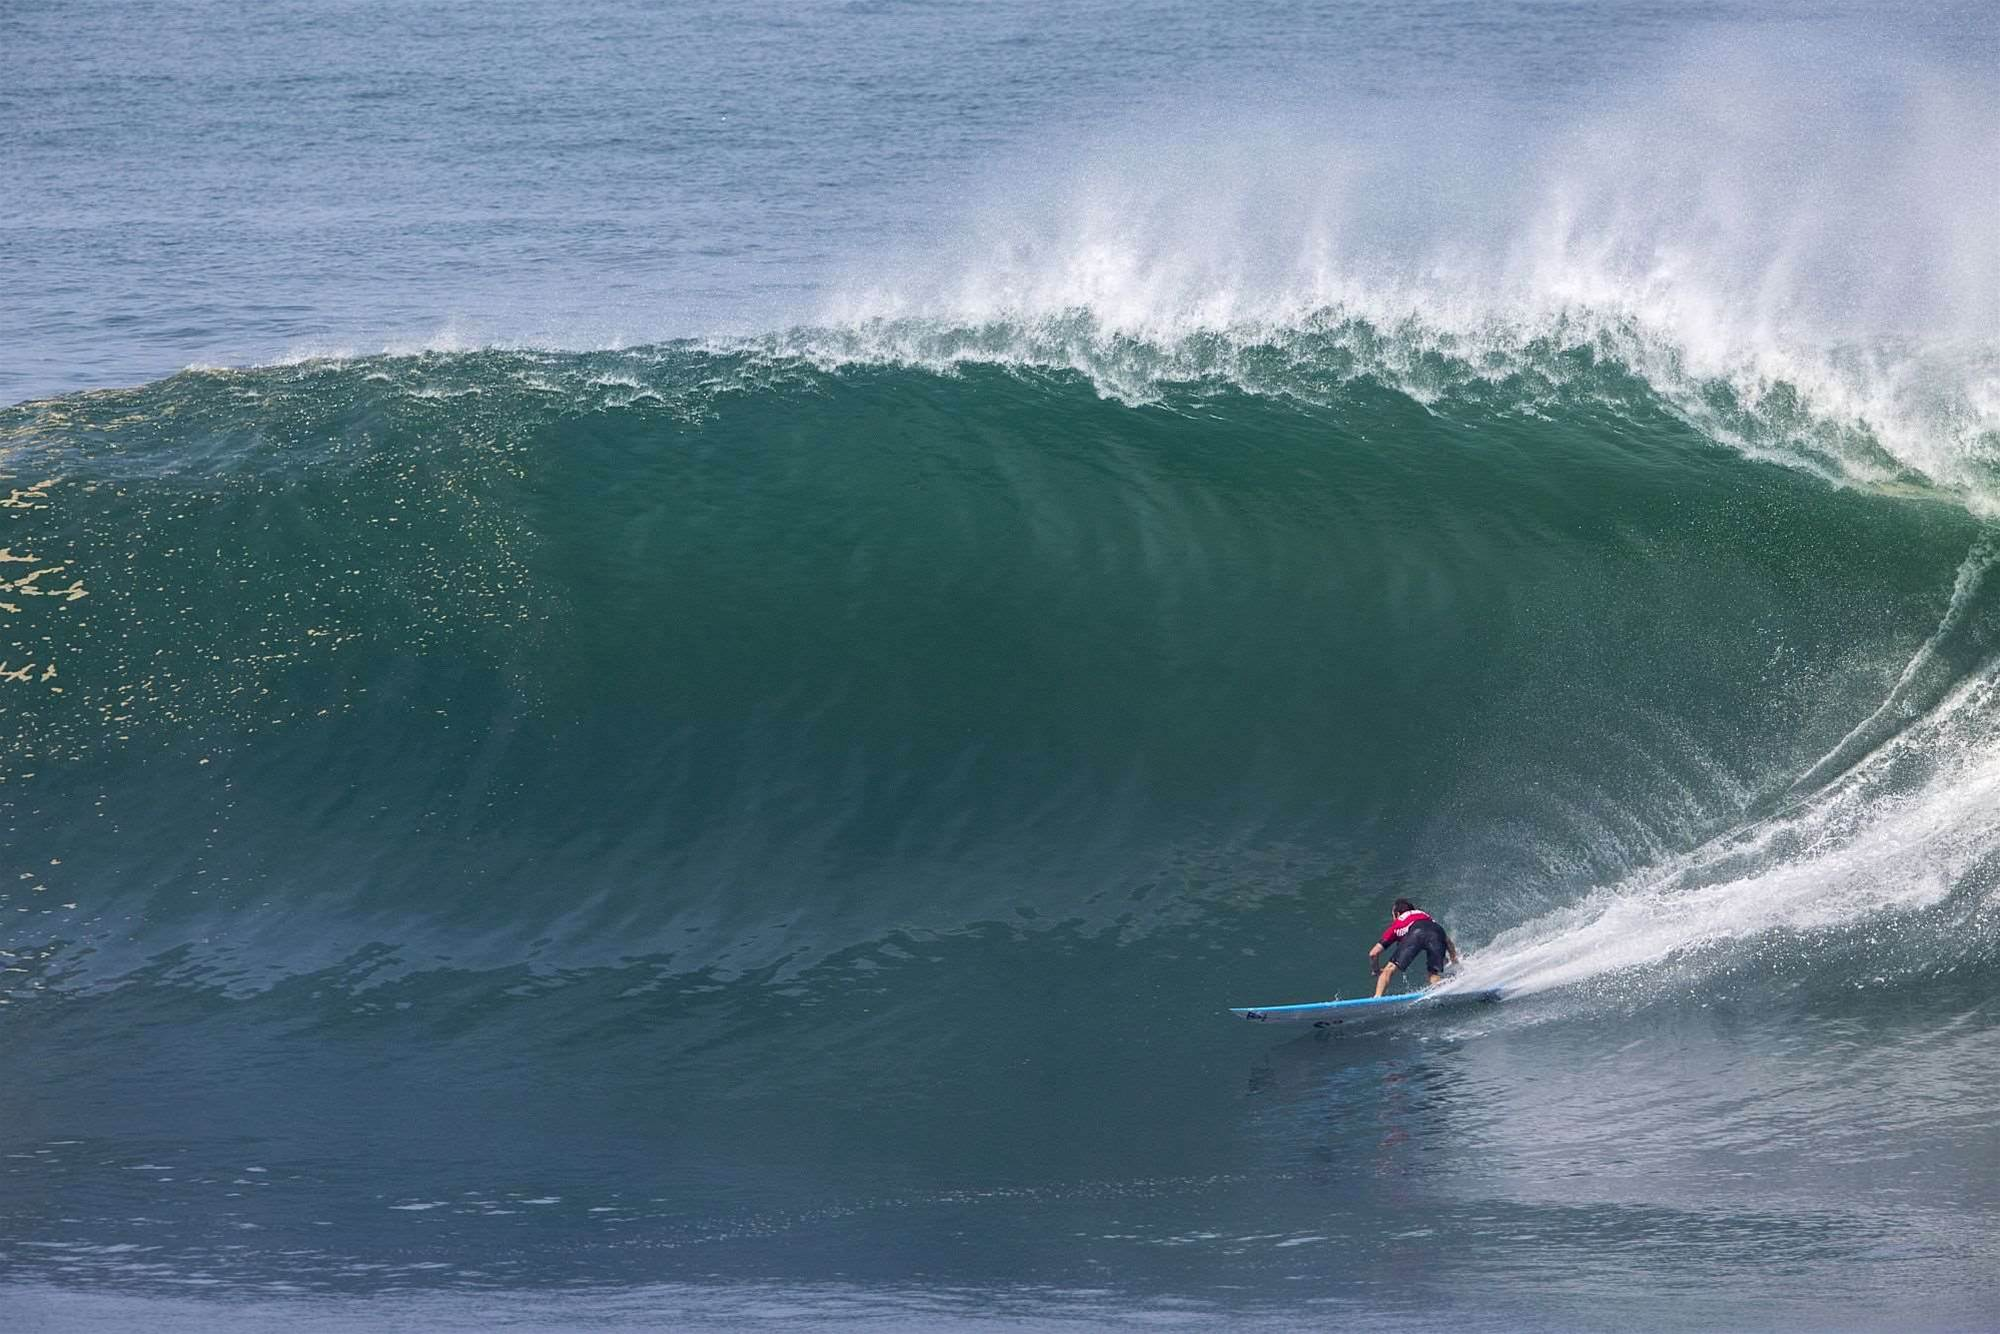 The Big Wave Tour – Looking Forward